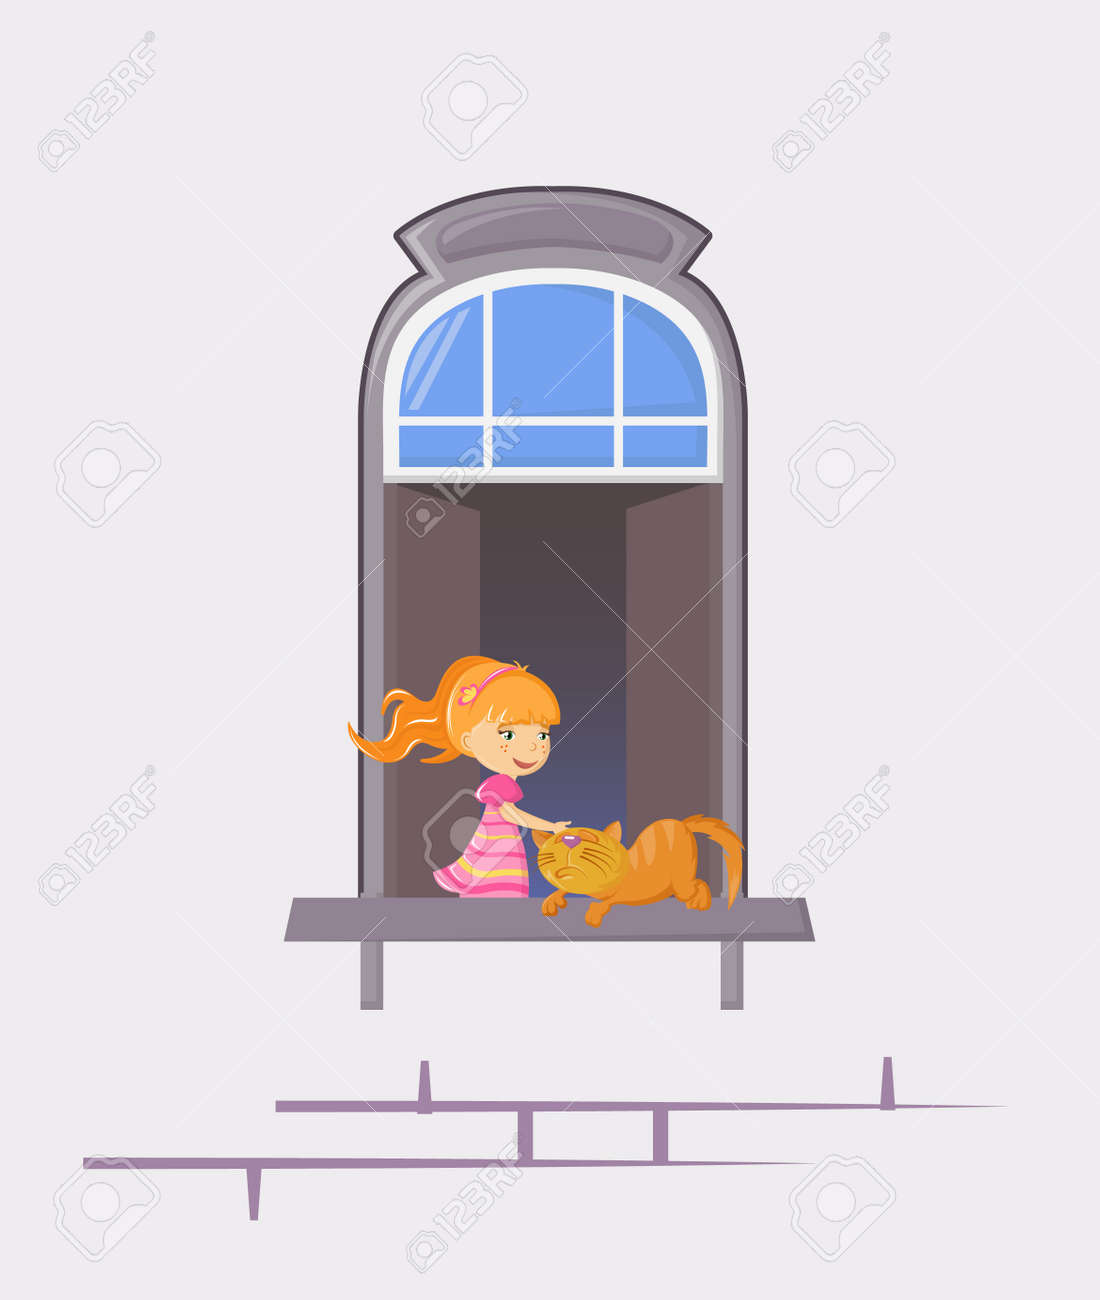 Neighbors in windows of old house. House building facade with open windows and with people. - 146426191